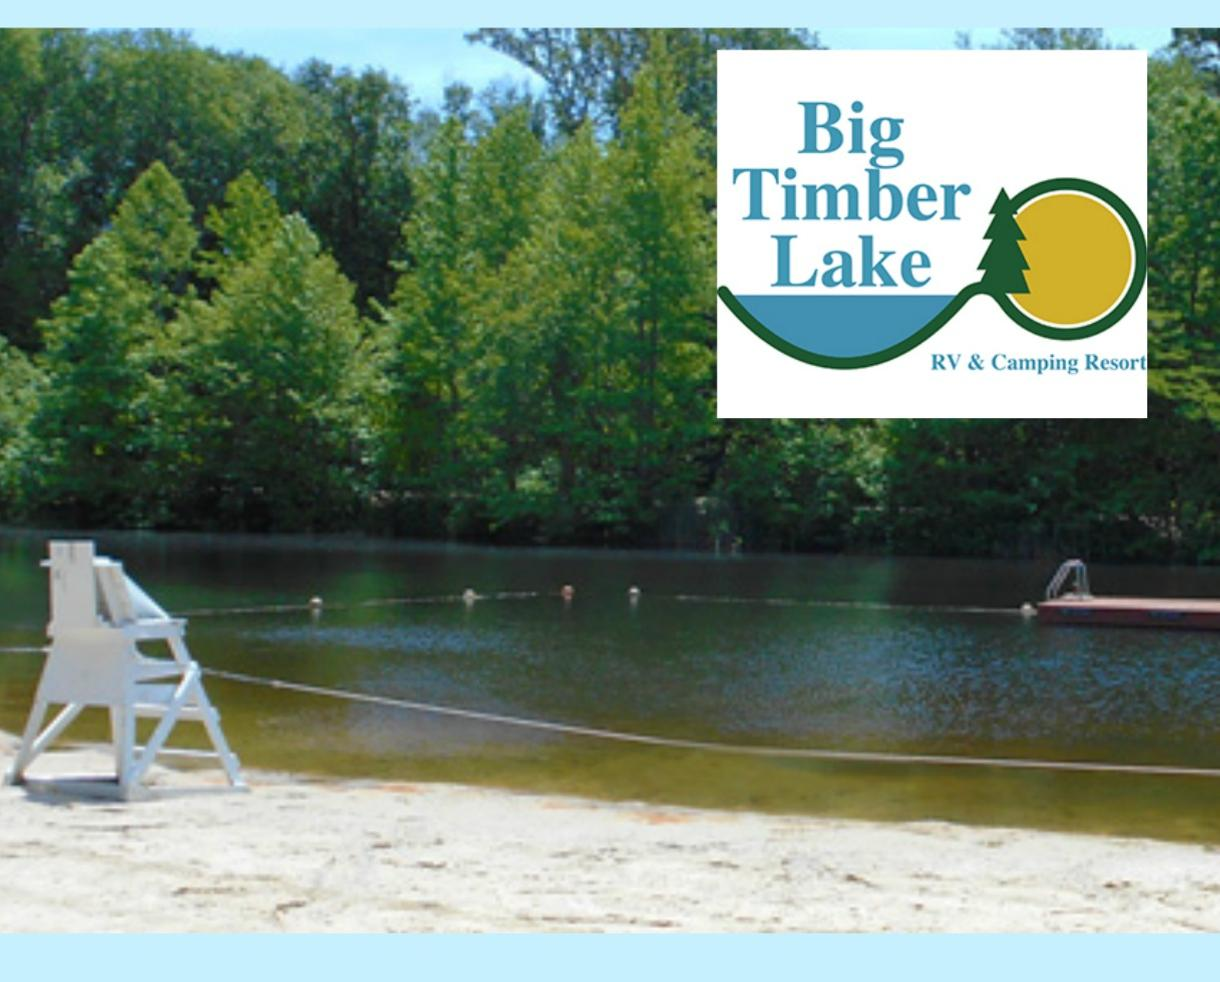 $133+ for 2-Night RV or Cabin Getaway at Big Timber Lake Camping Resort - Near Avalon Beach, NJ (Up to 46% Off)